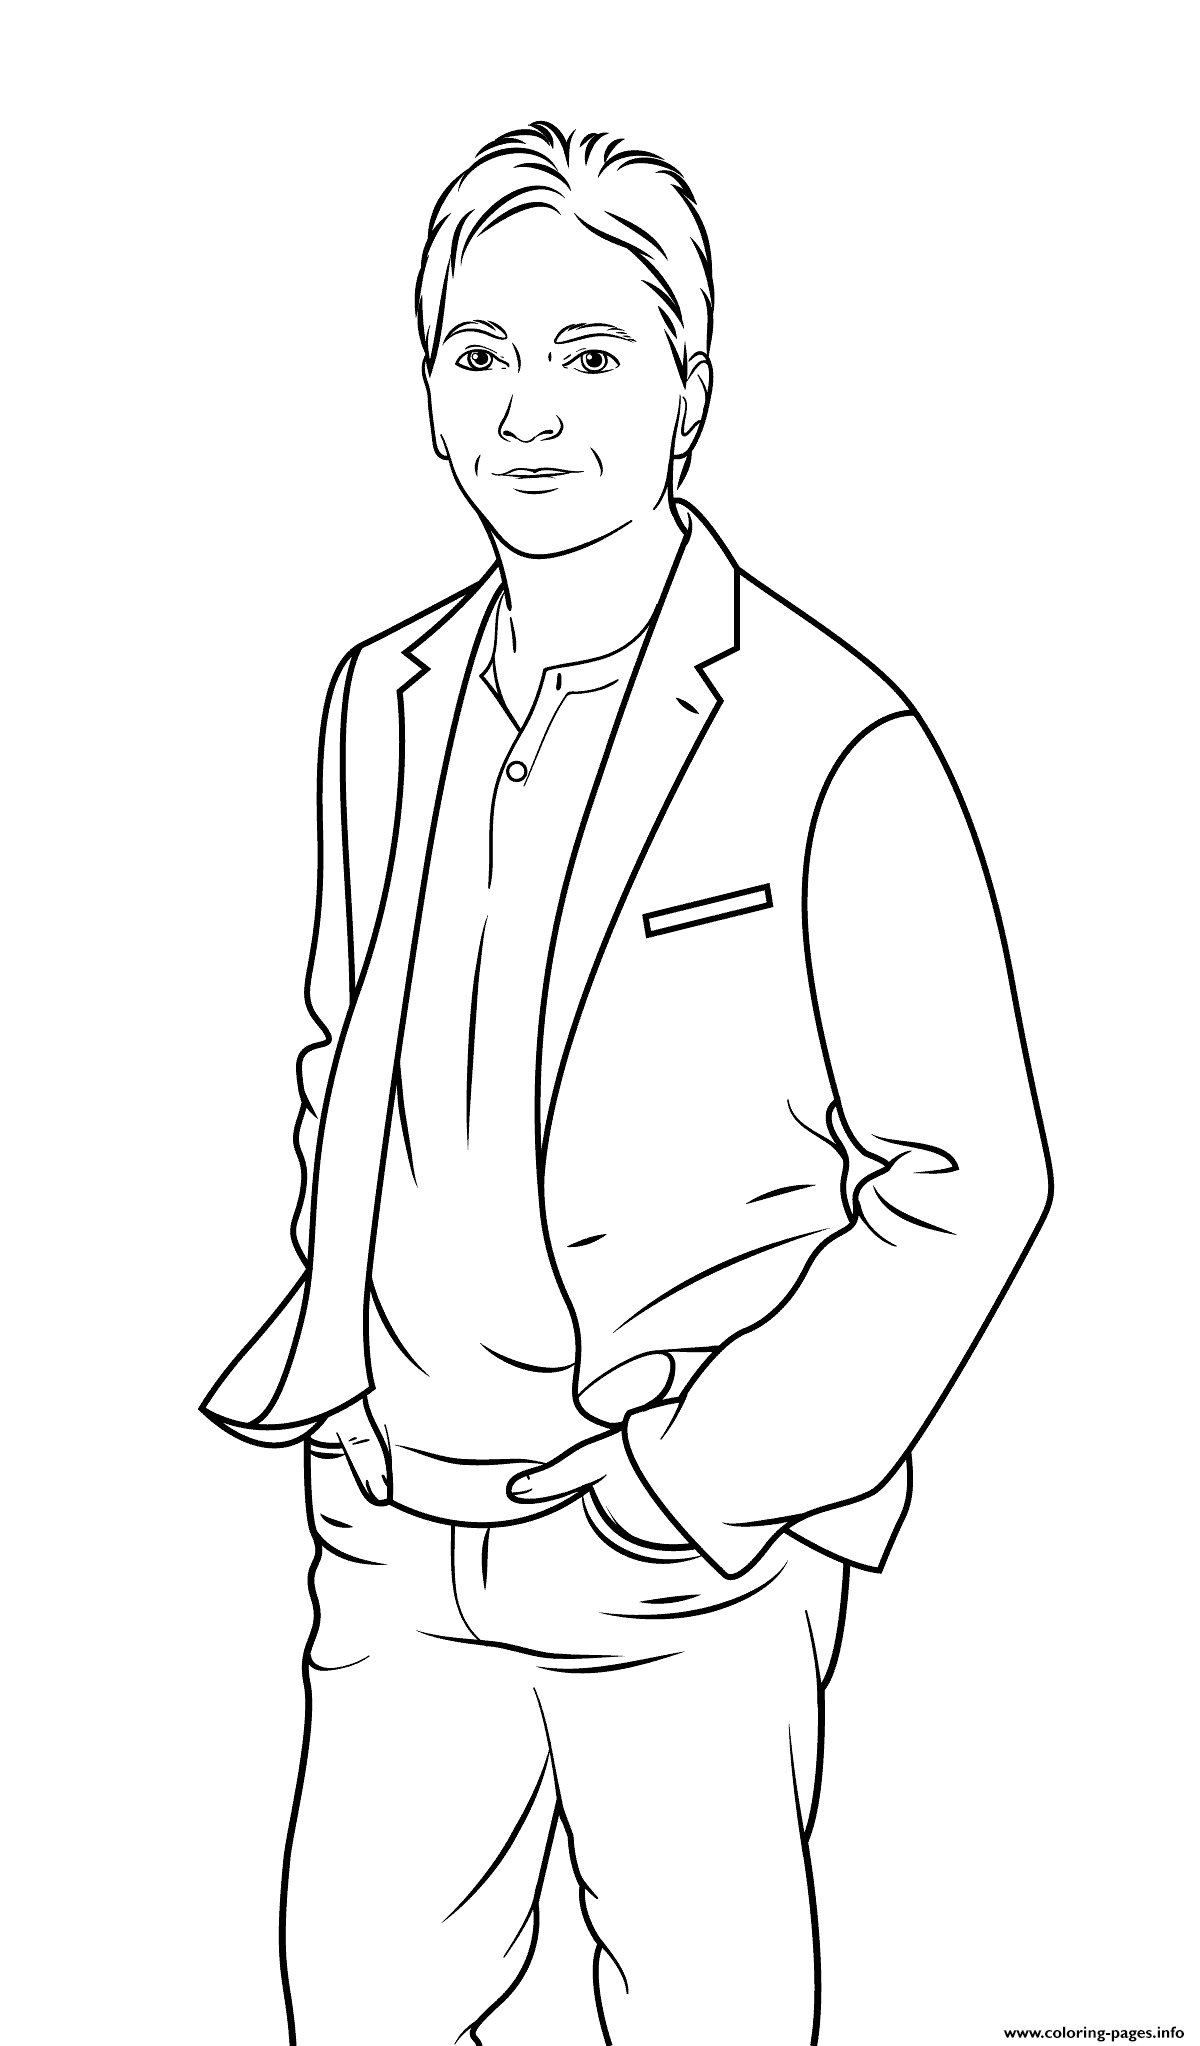 celebrity coloring pages hollywood star coloring hollywood stars pitt wahlberg coloring pages celebrity